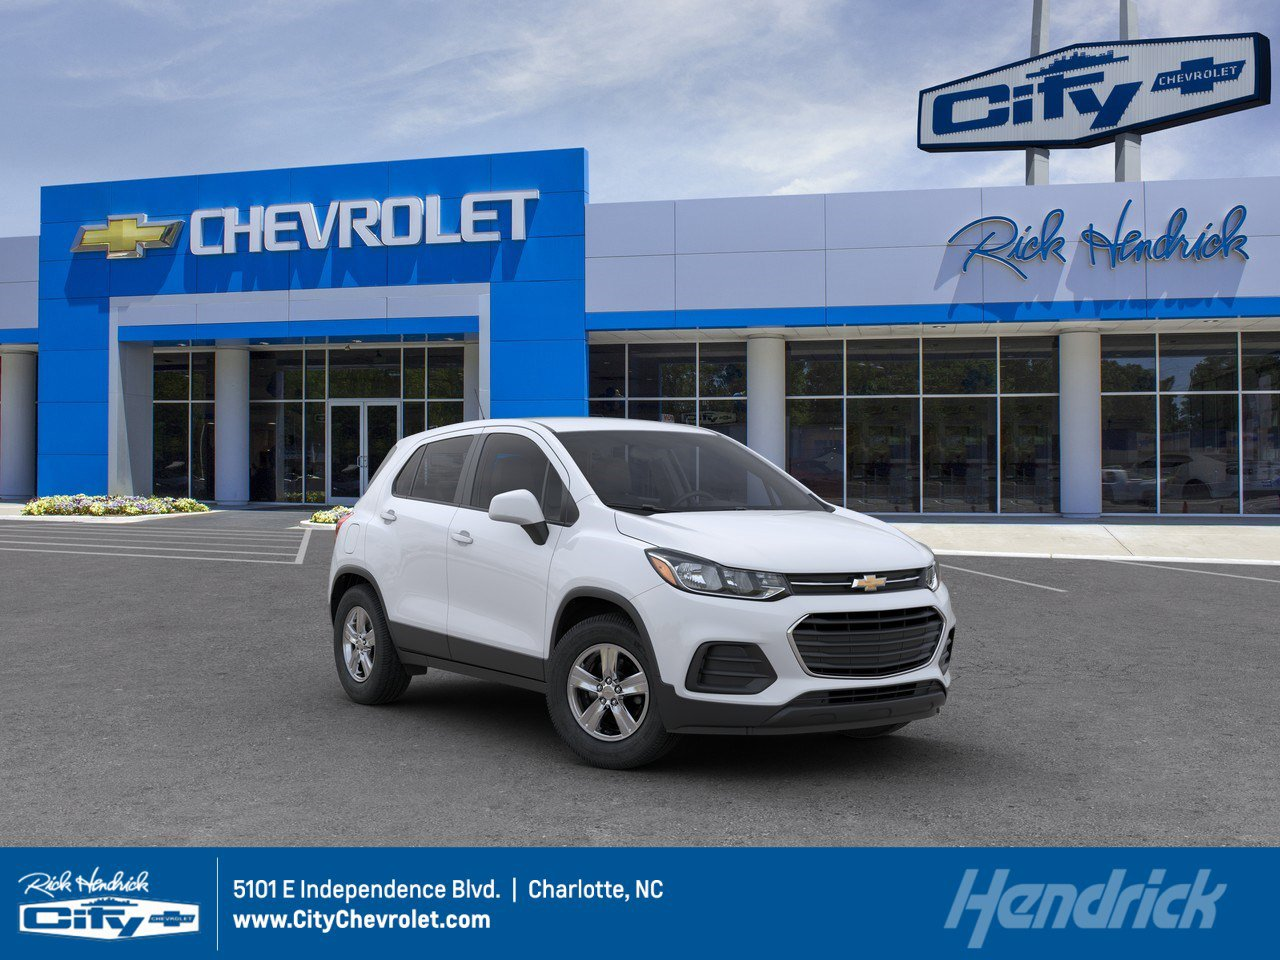 Chevy Dealership Charlotte Nc >> New Chevy For Sale In Charlotte Rick Hendrick City Chevrolet